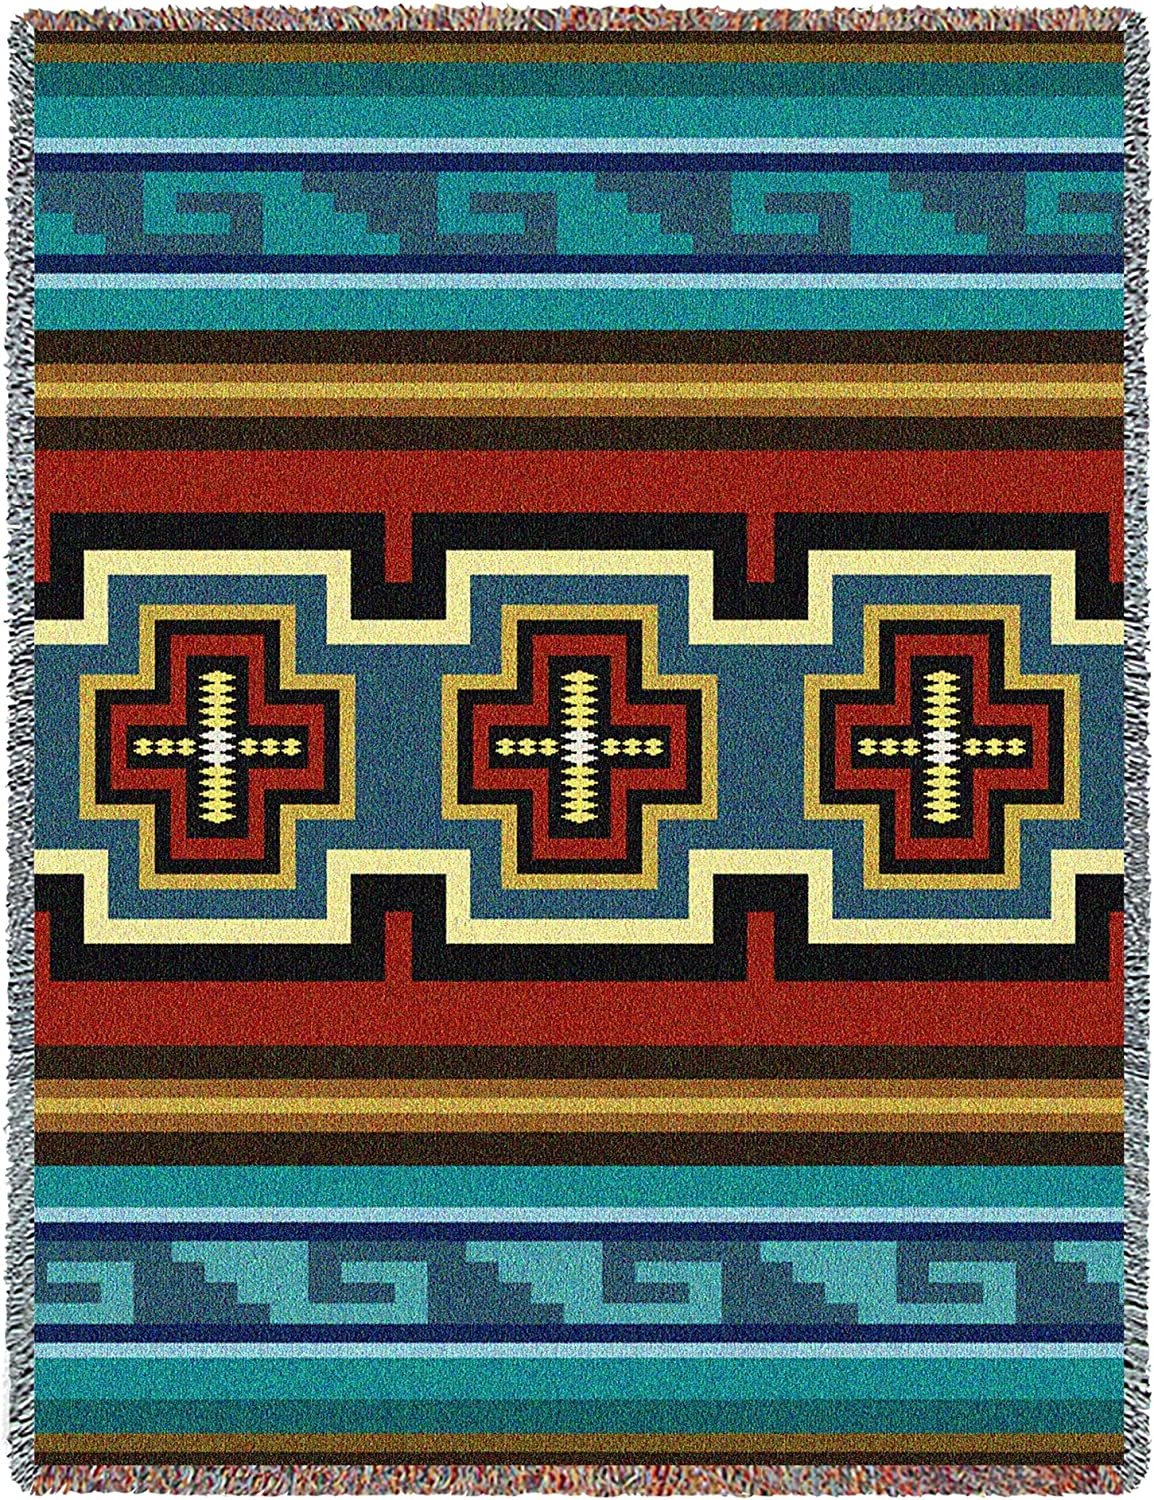 Pure Country Weavers   Sarkoy Southwest Blanket   Woven Tapestry Camp Throw with Fringe Cotton USA 72x54